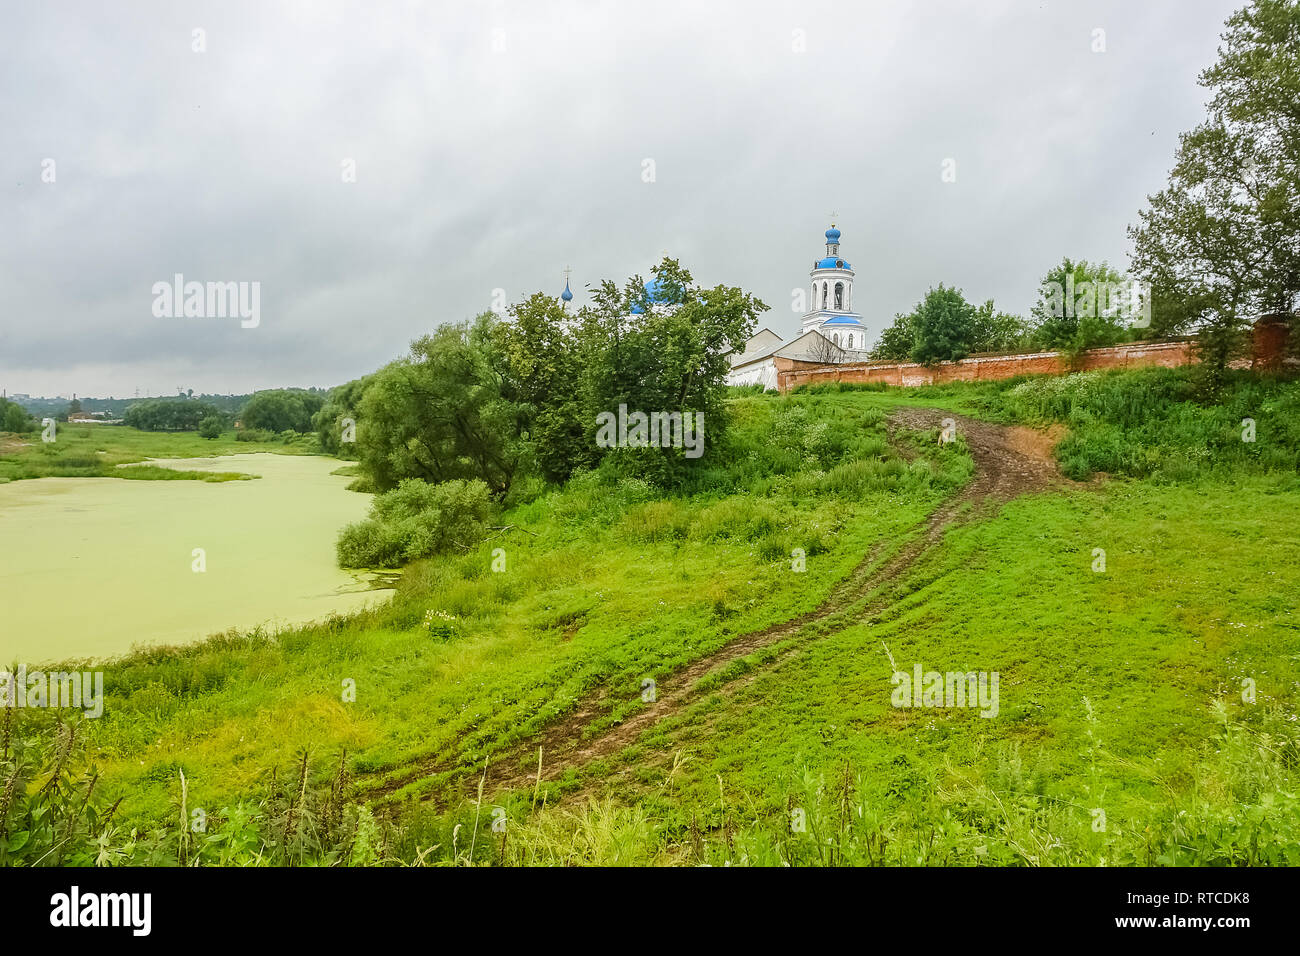 River Church  Summer Before Rain - Stock Image